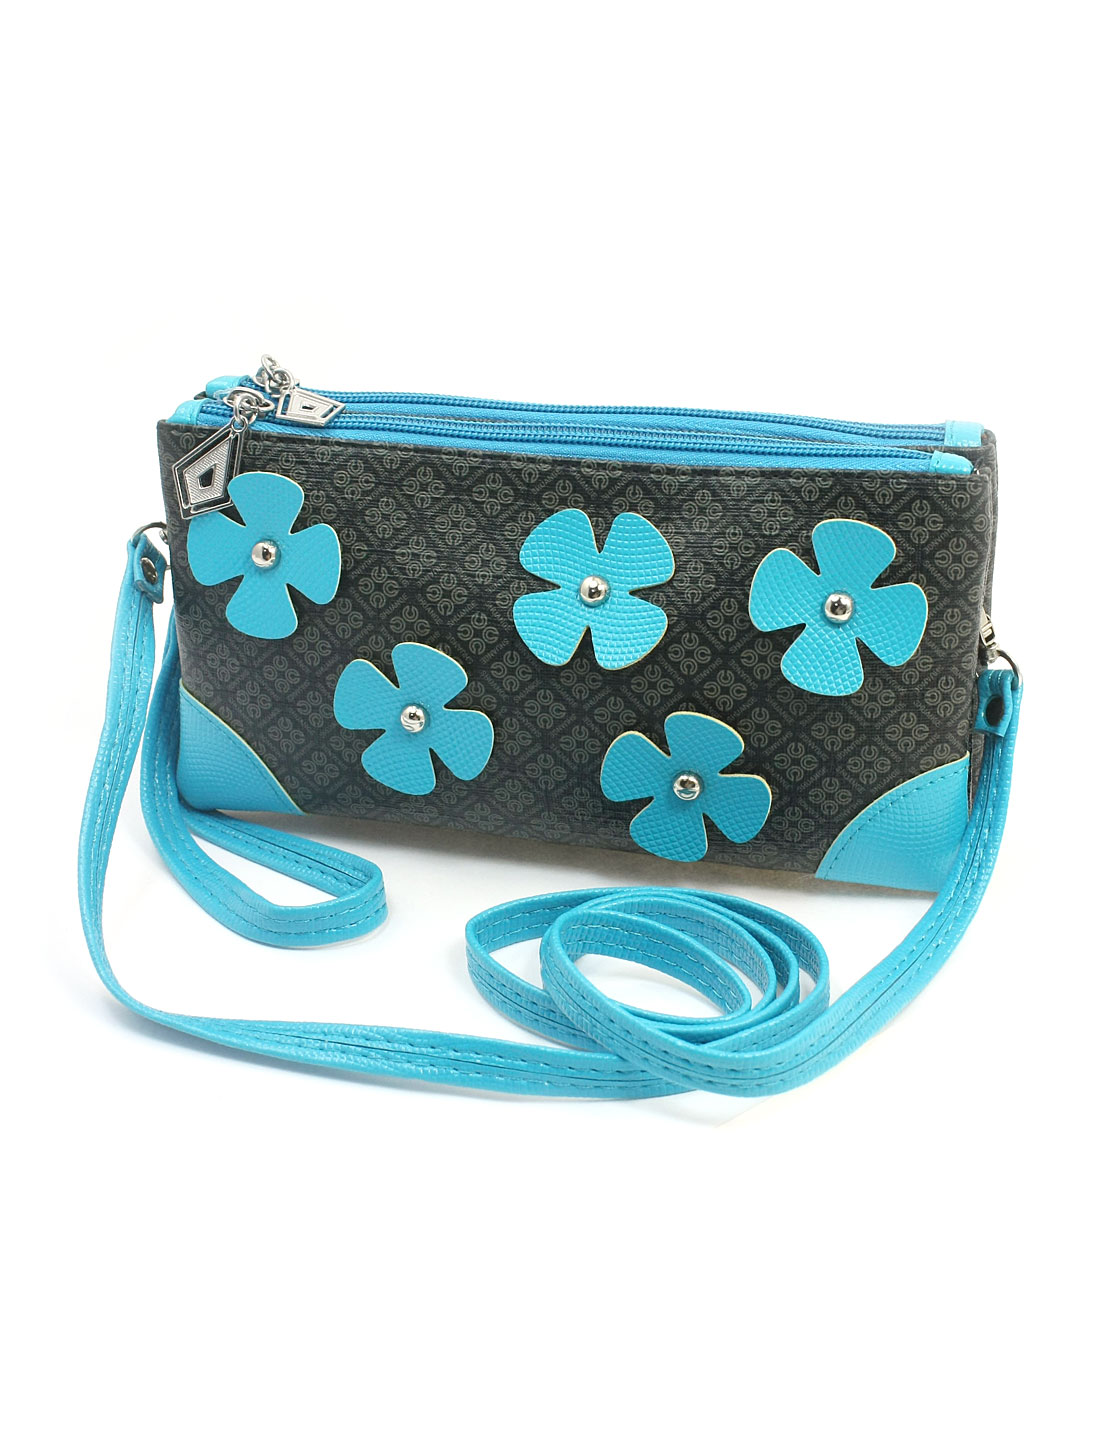 Lady Zippered 3 Compartments Five Blue Flowers Decor Plaid Pattern Dark Gray Faux Leather Shoulder Bag Purse Wallet w Hand Strap